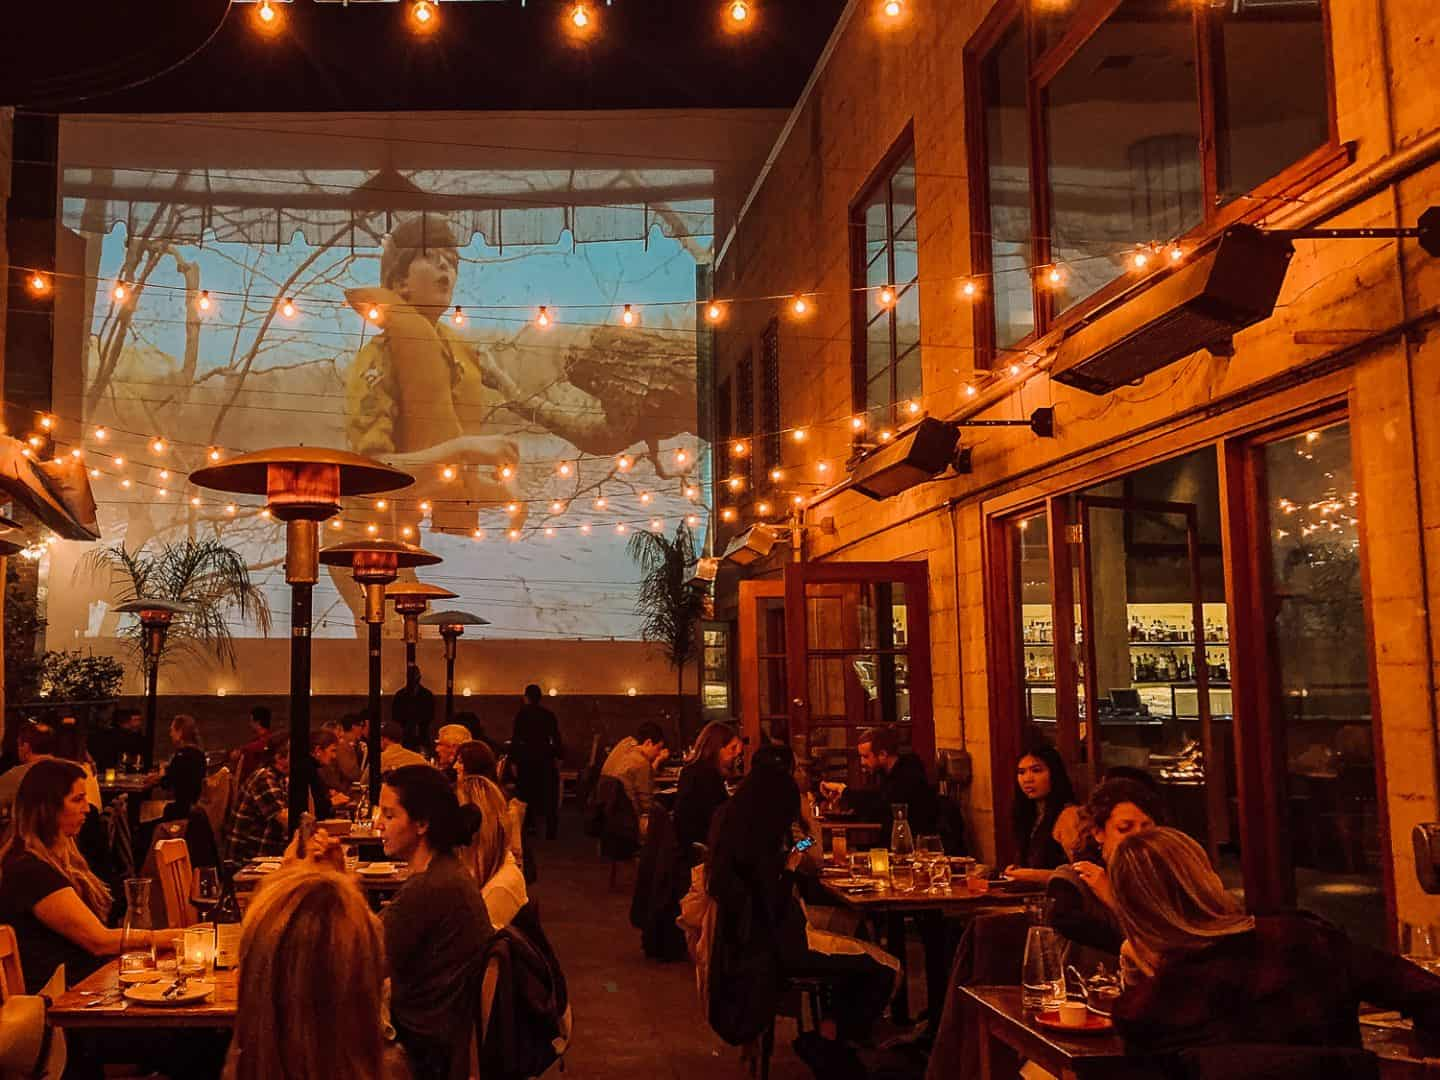 restaurant with movie on the projector